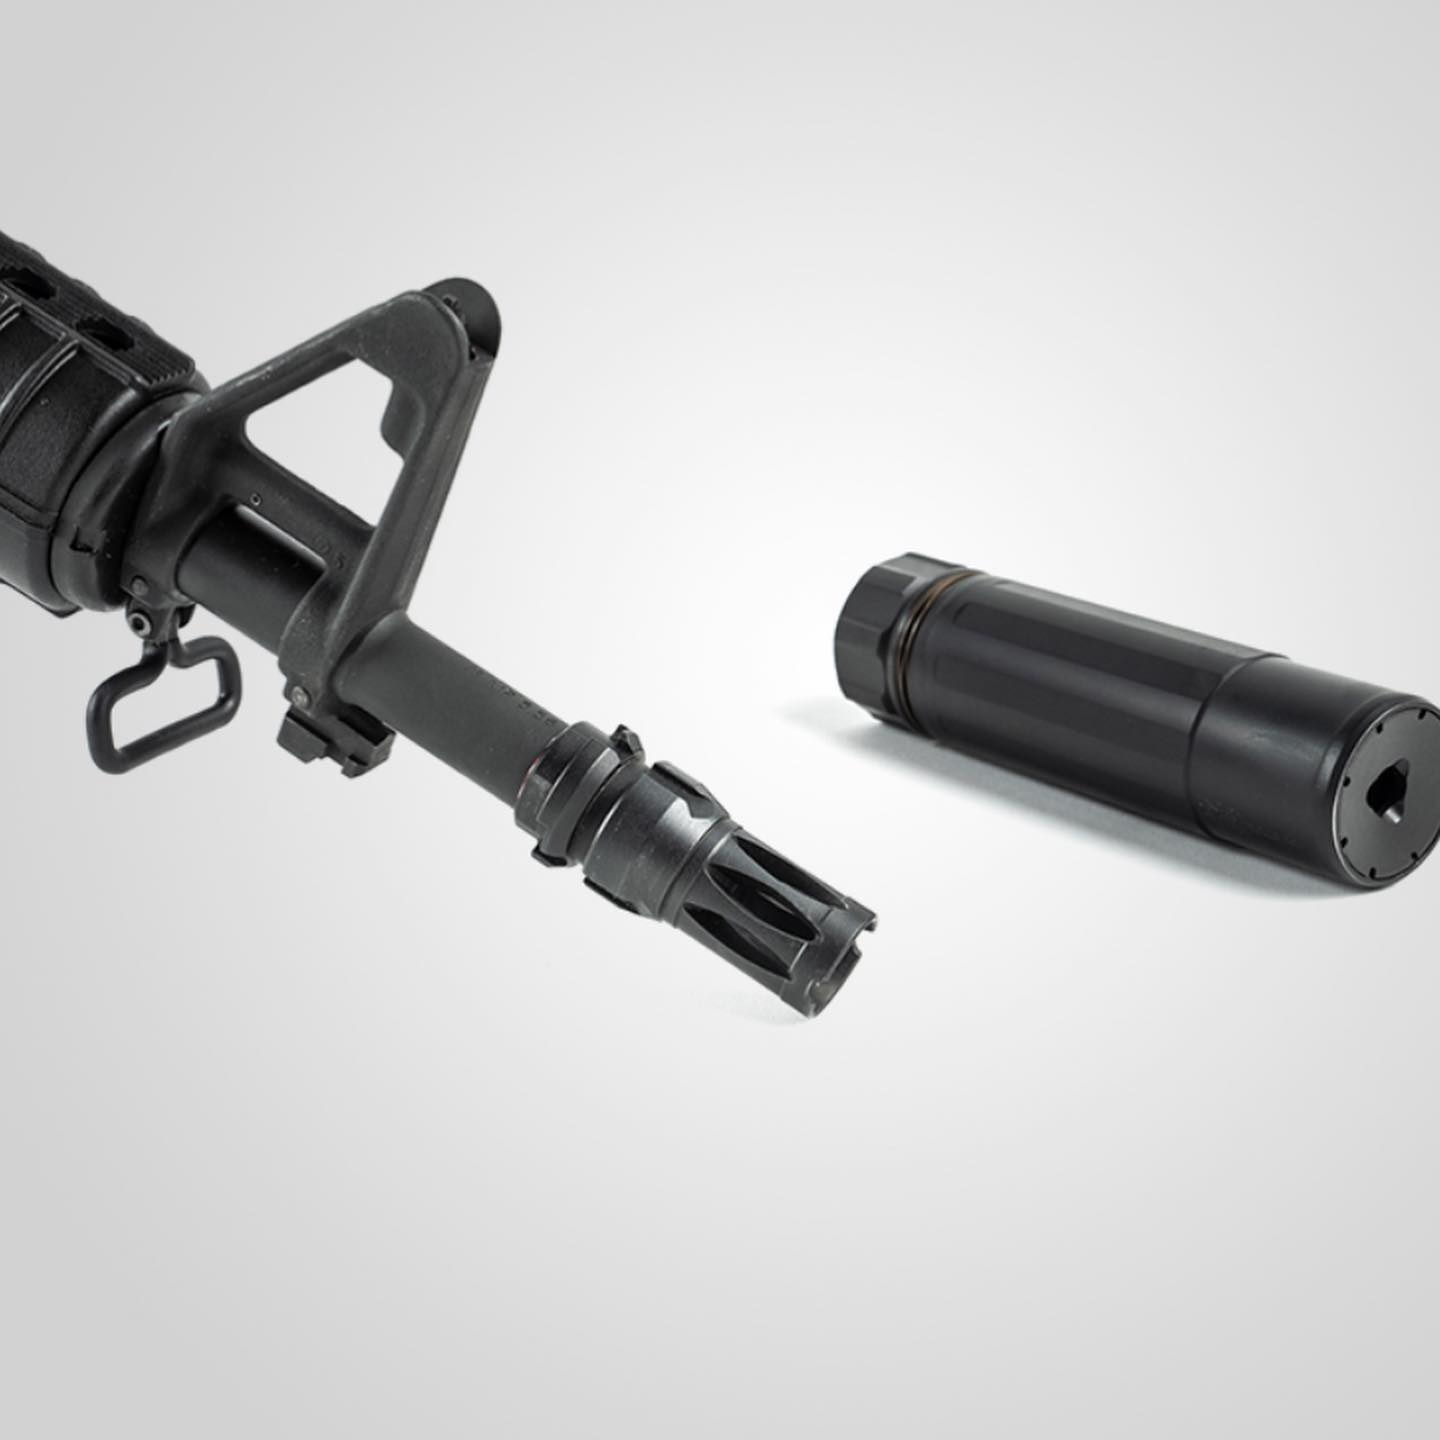 The main departure from the original 733 design is this Forward Control Design flash hider, which serves as the mount for your numbers-matching can.